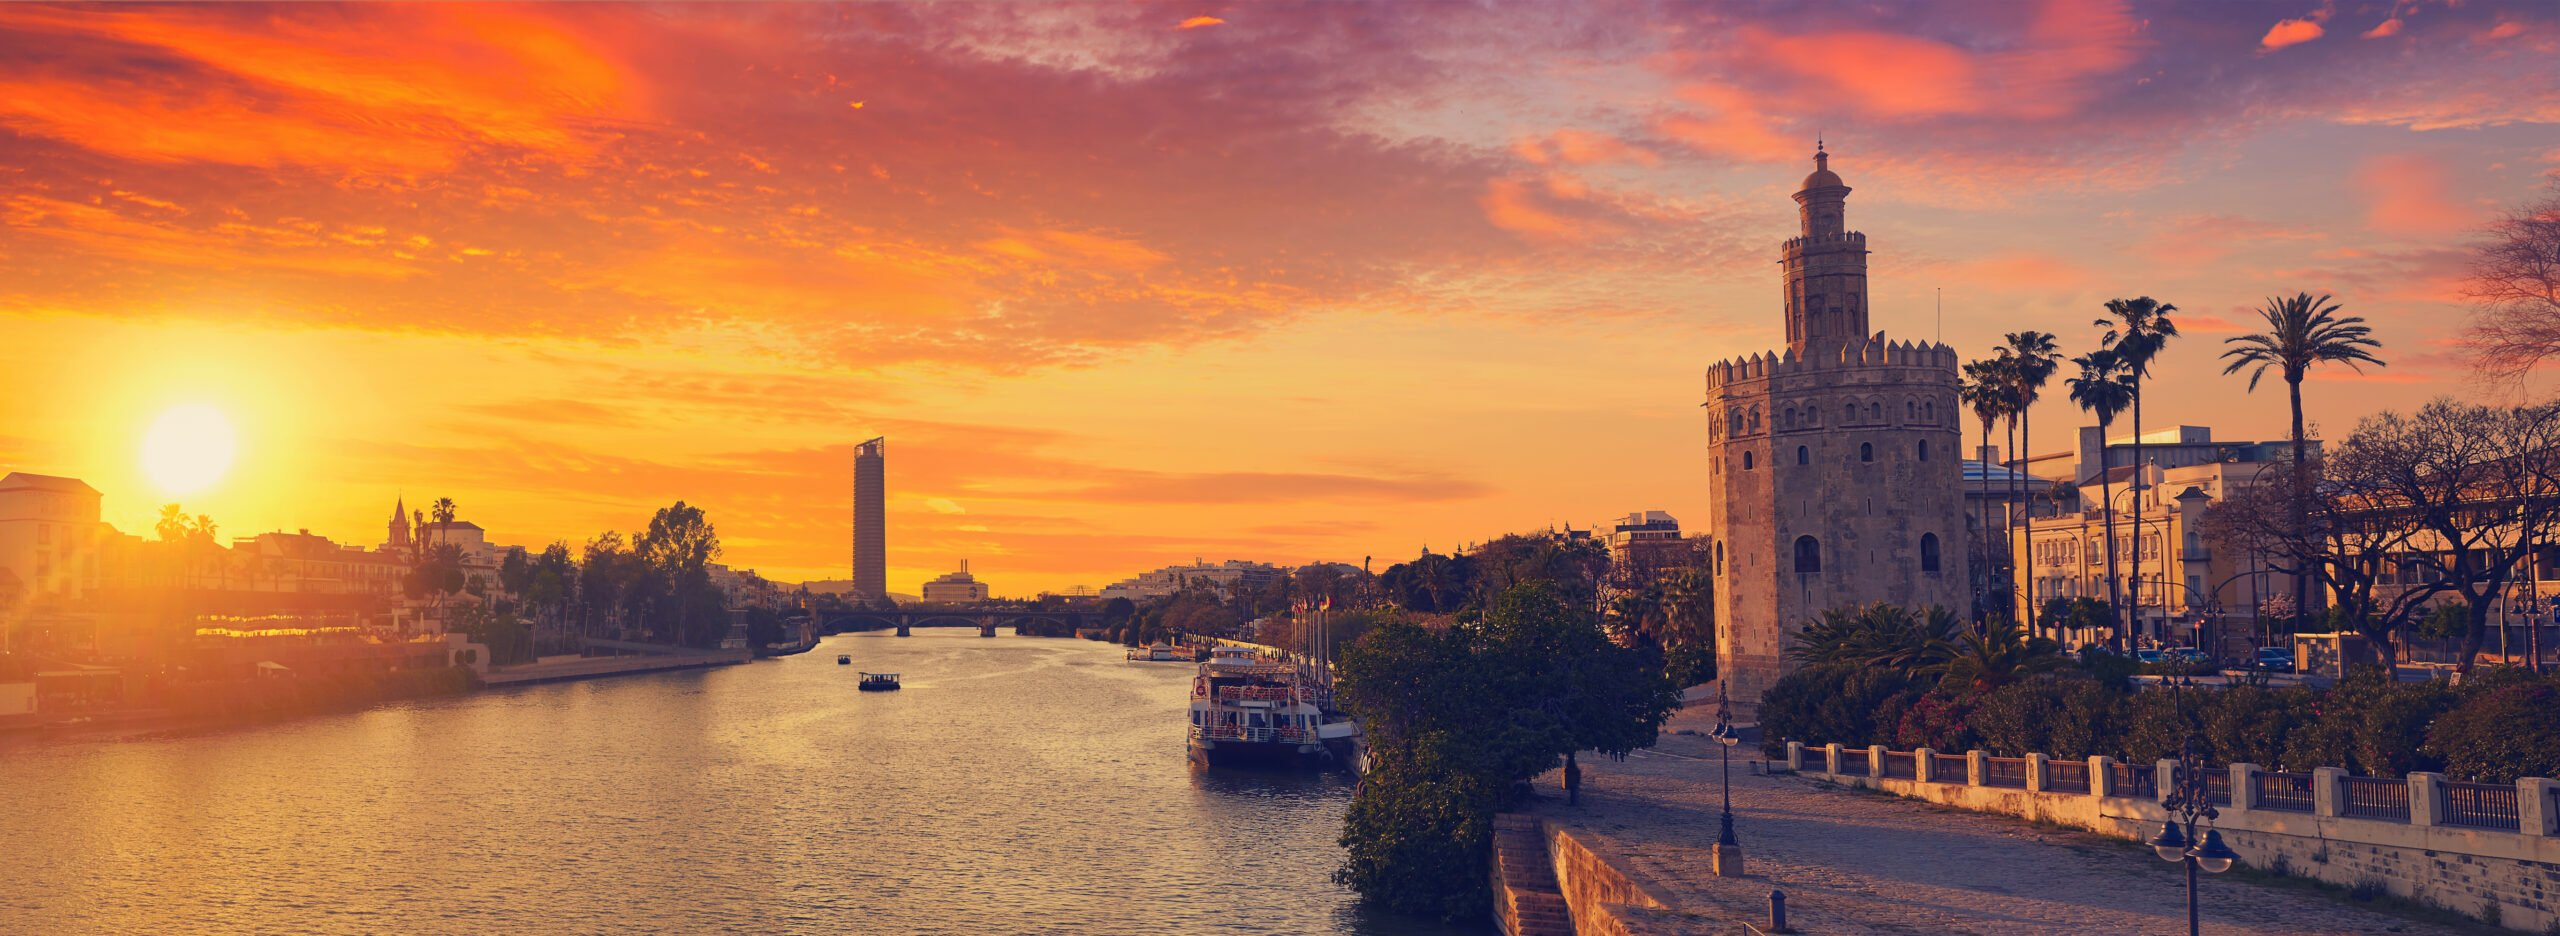 2 Days In Seville Itinerary